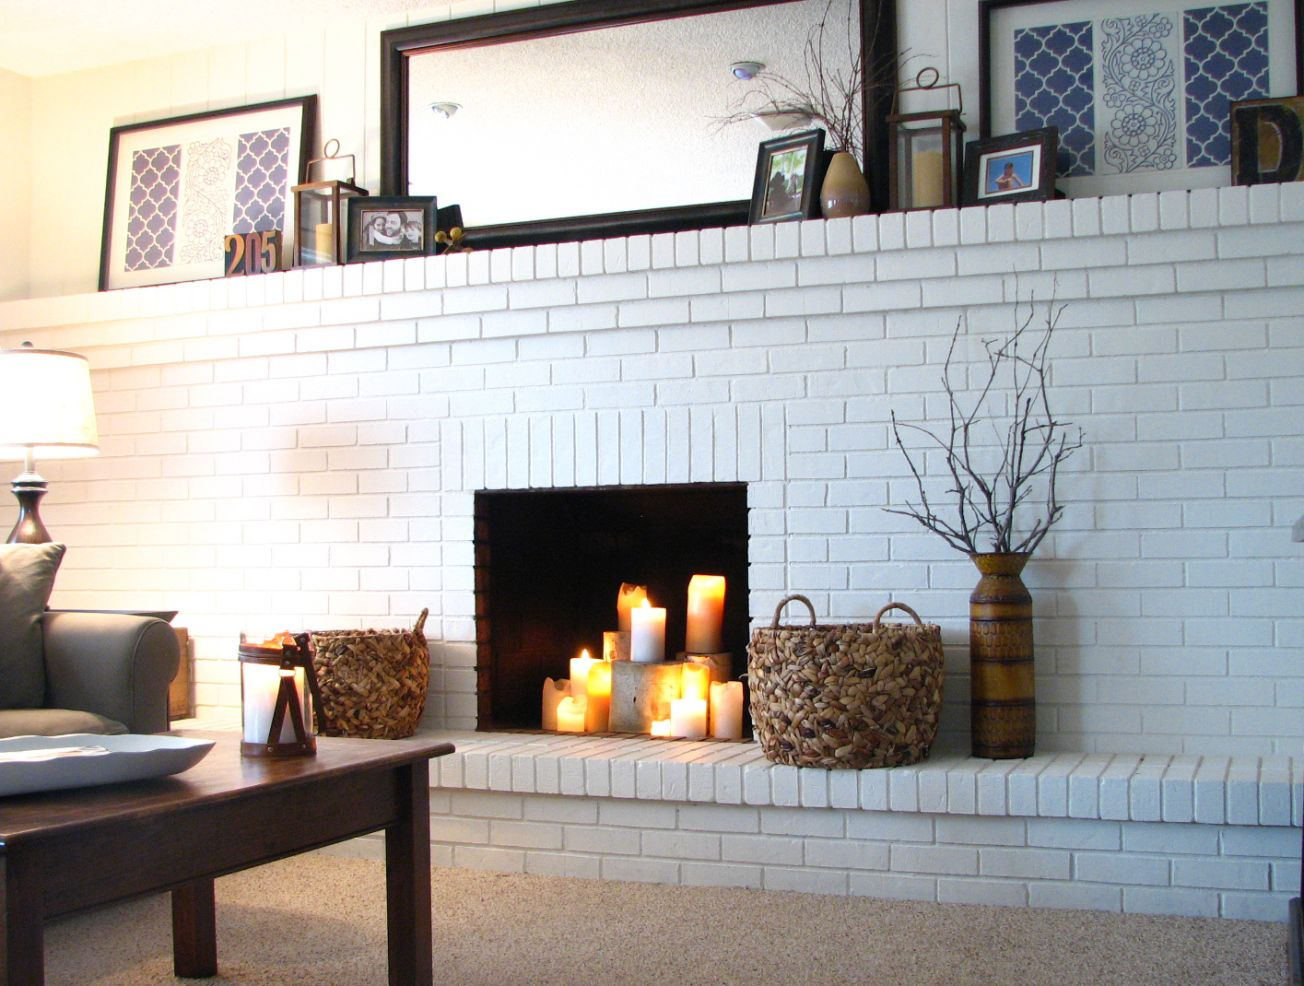 Pleasant All In The Family Roompainted Brick Fireplace Fireplace Home Interior And Landscaping Ponolsignezvosmurscom